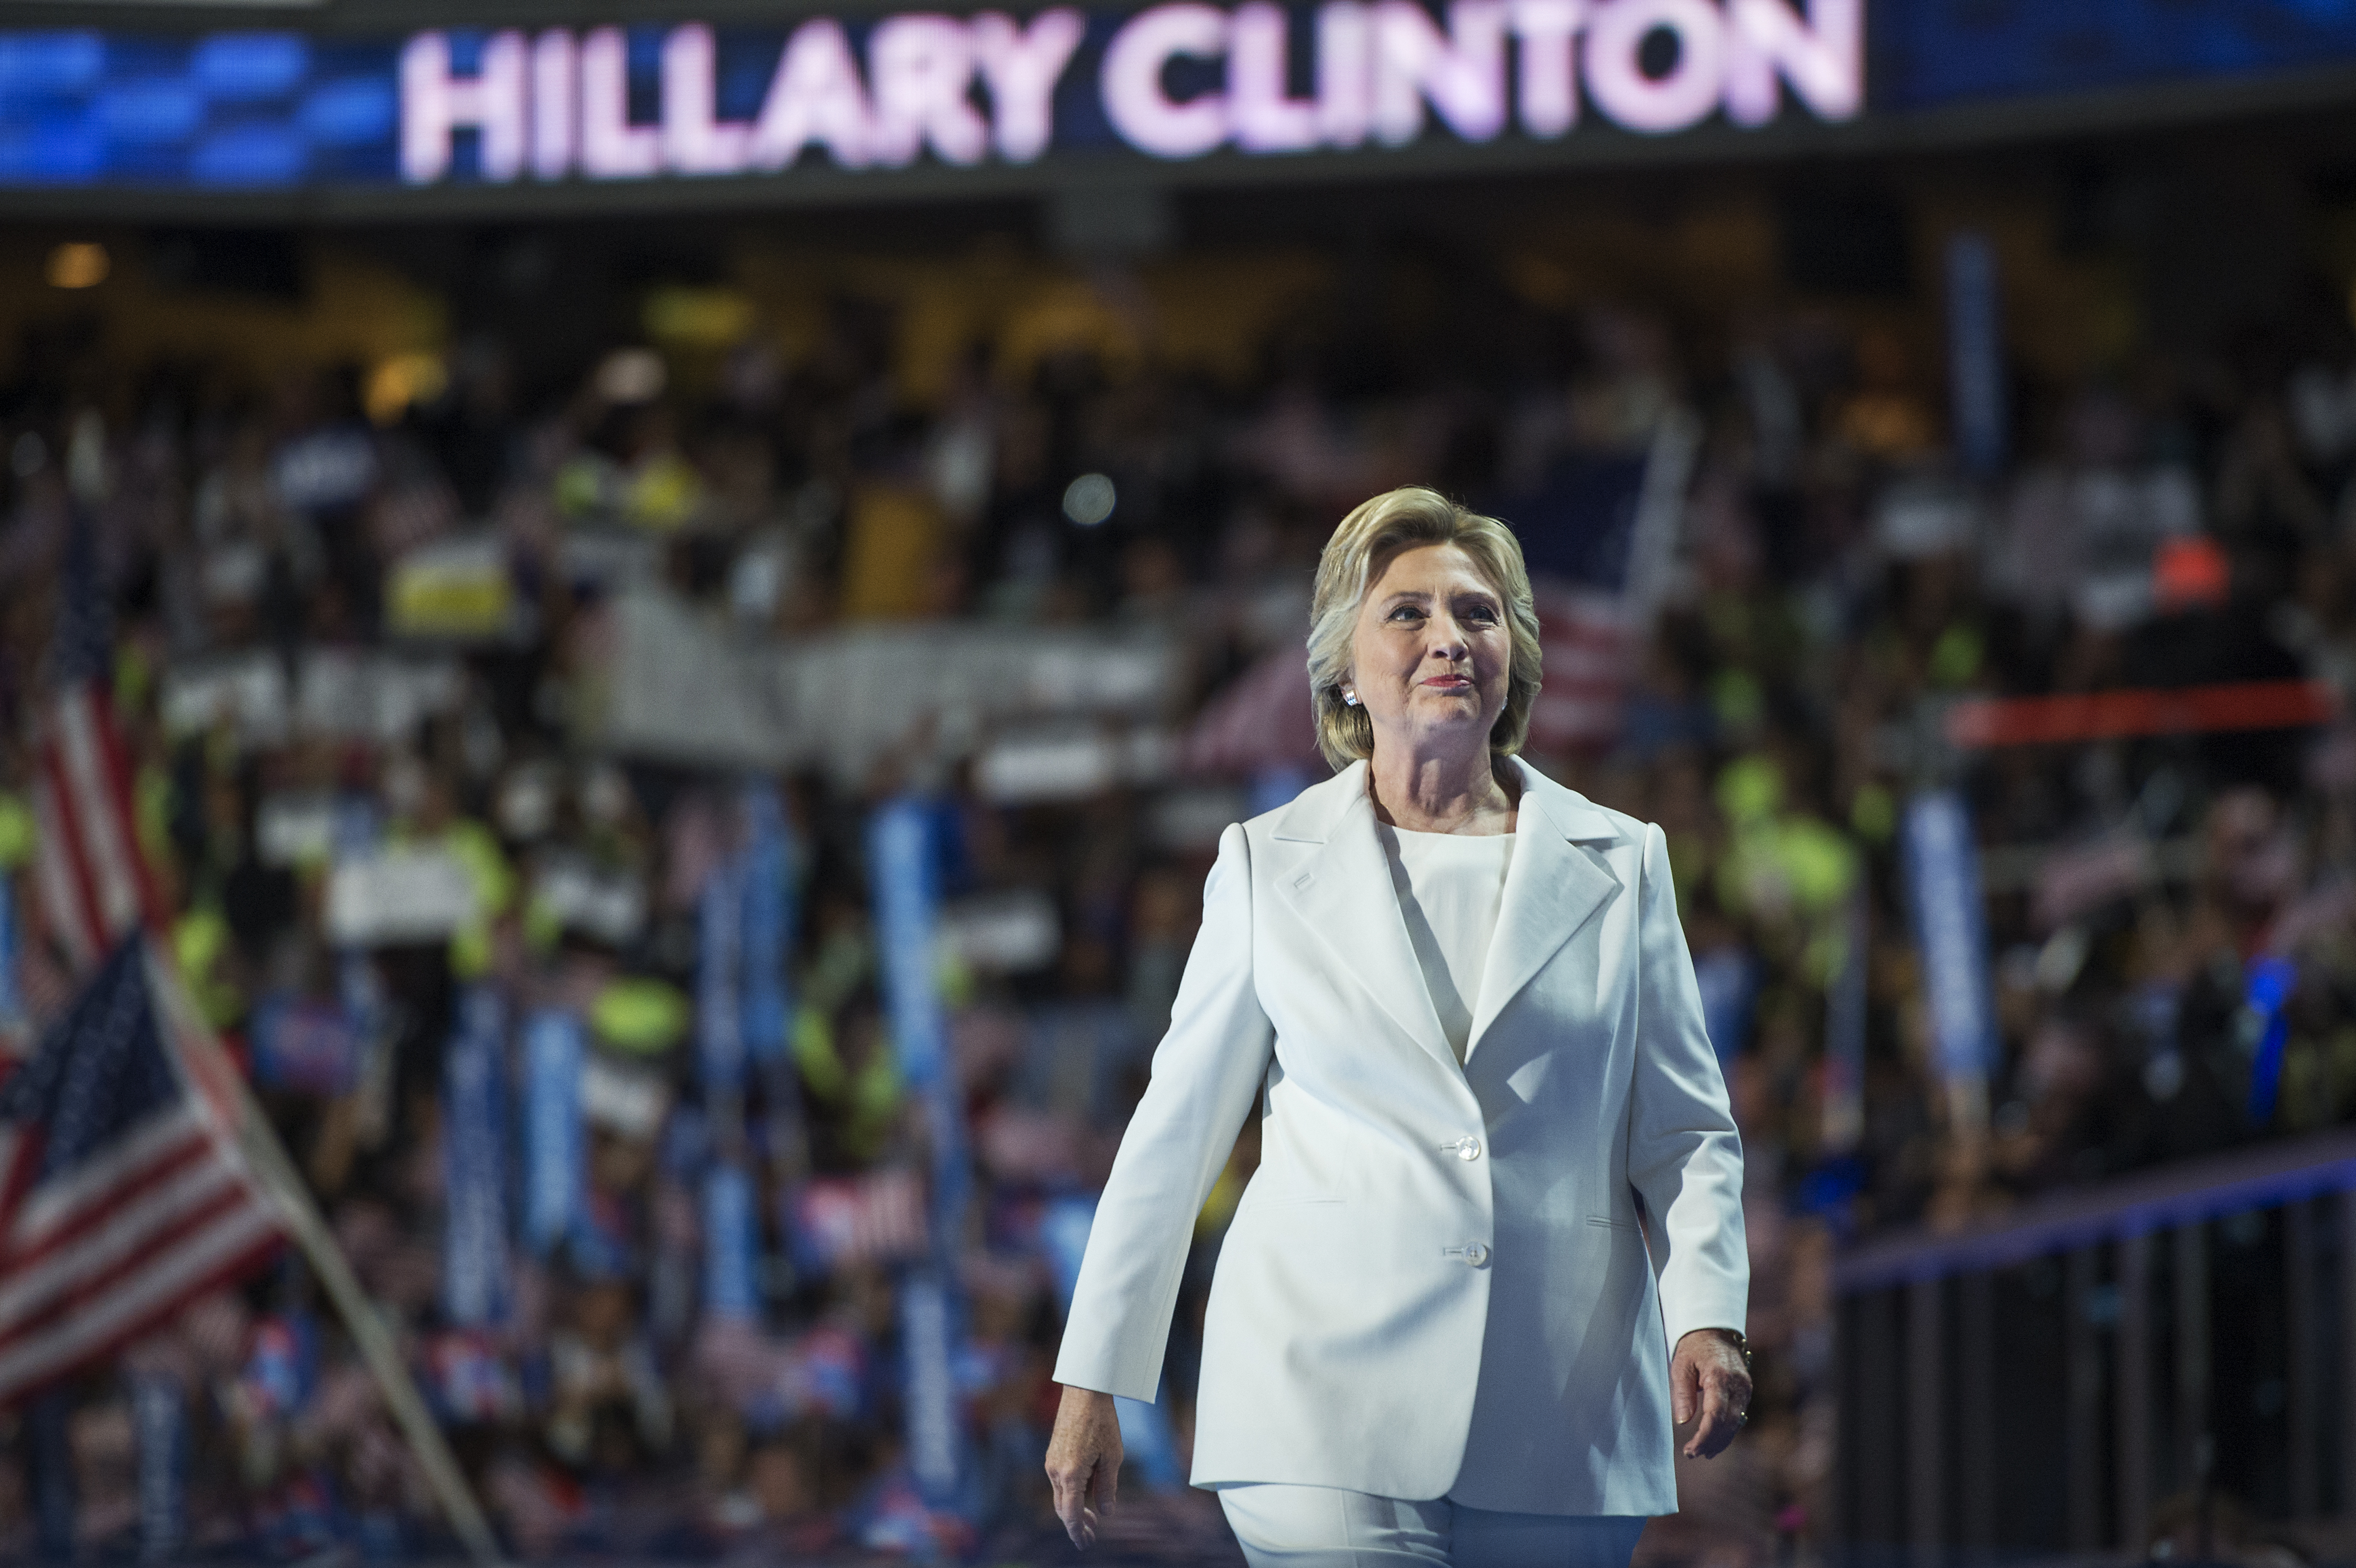 Hillary Clinton arrives to address the crowd on the stage of the Wells Fargo Center in Philadelphia, Pa., on the final night of the Democratic National Convention.